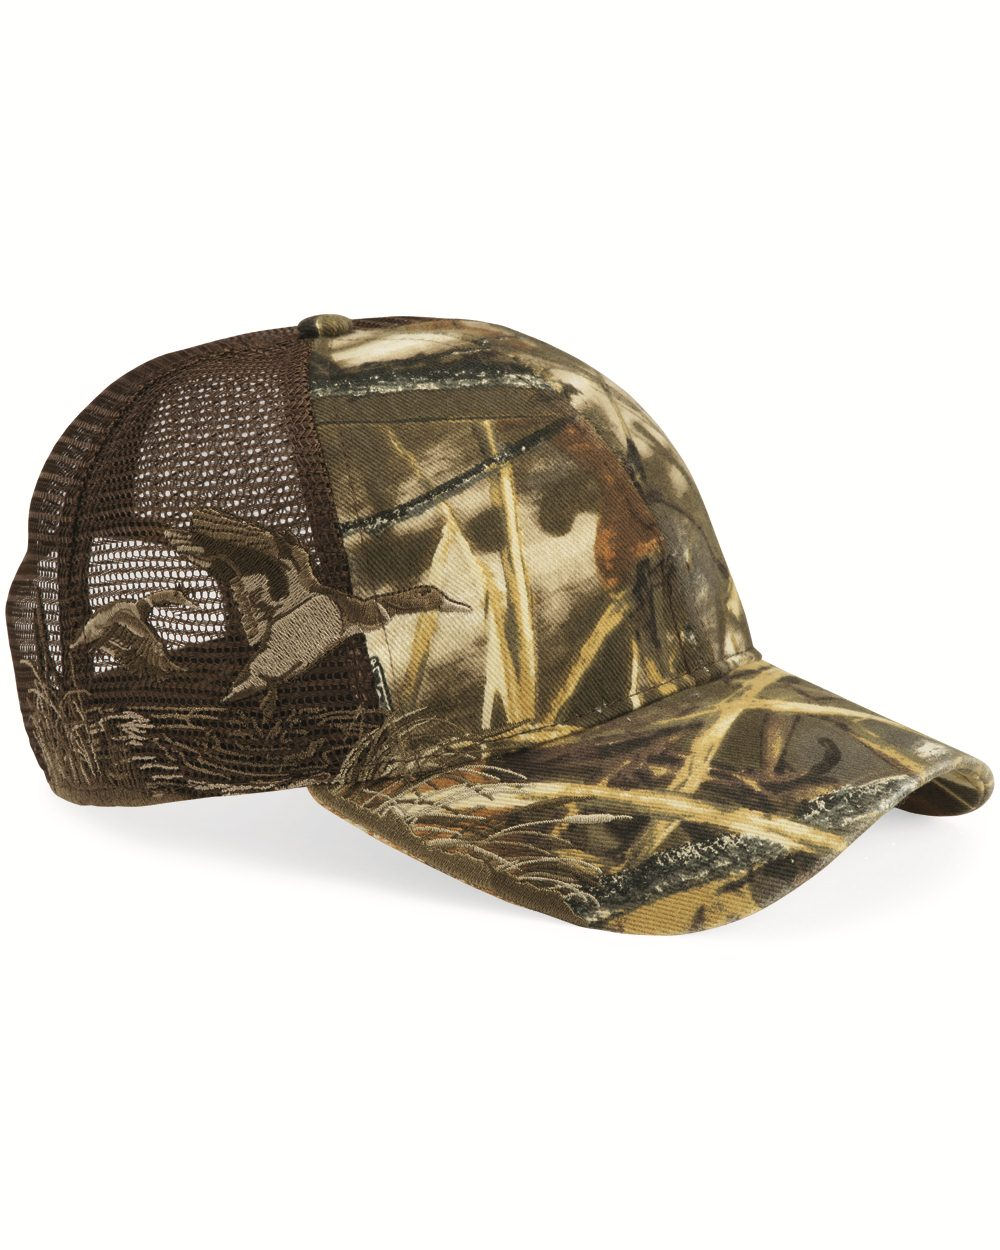 DRI DUCK Wildlife Series Mallard Caps - 3254